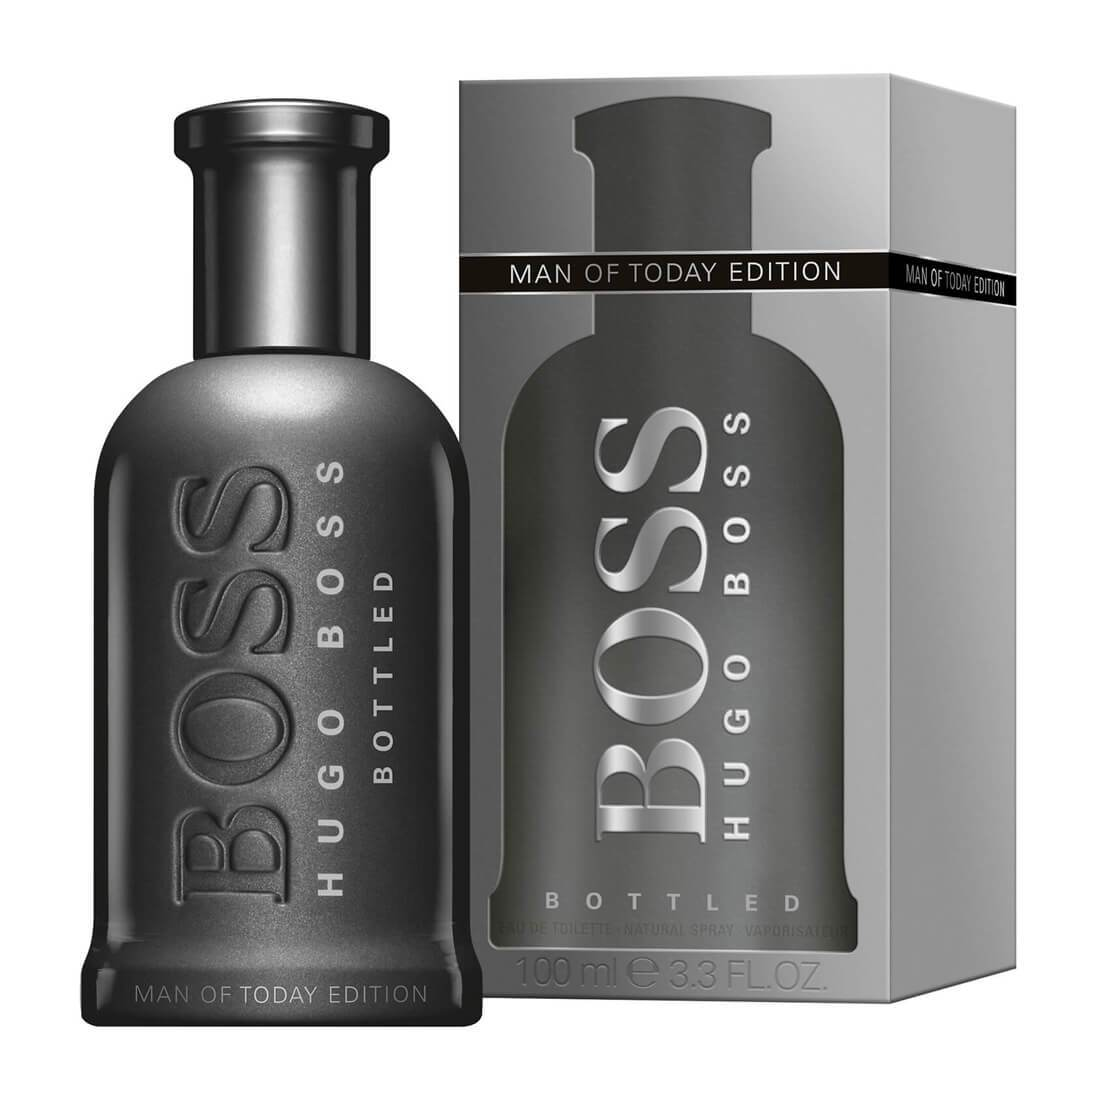 Hugo Boss Bottled Man of Today Perfume - 100ml